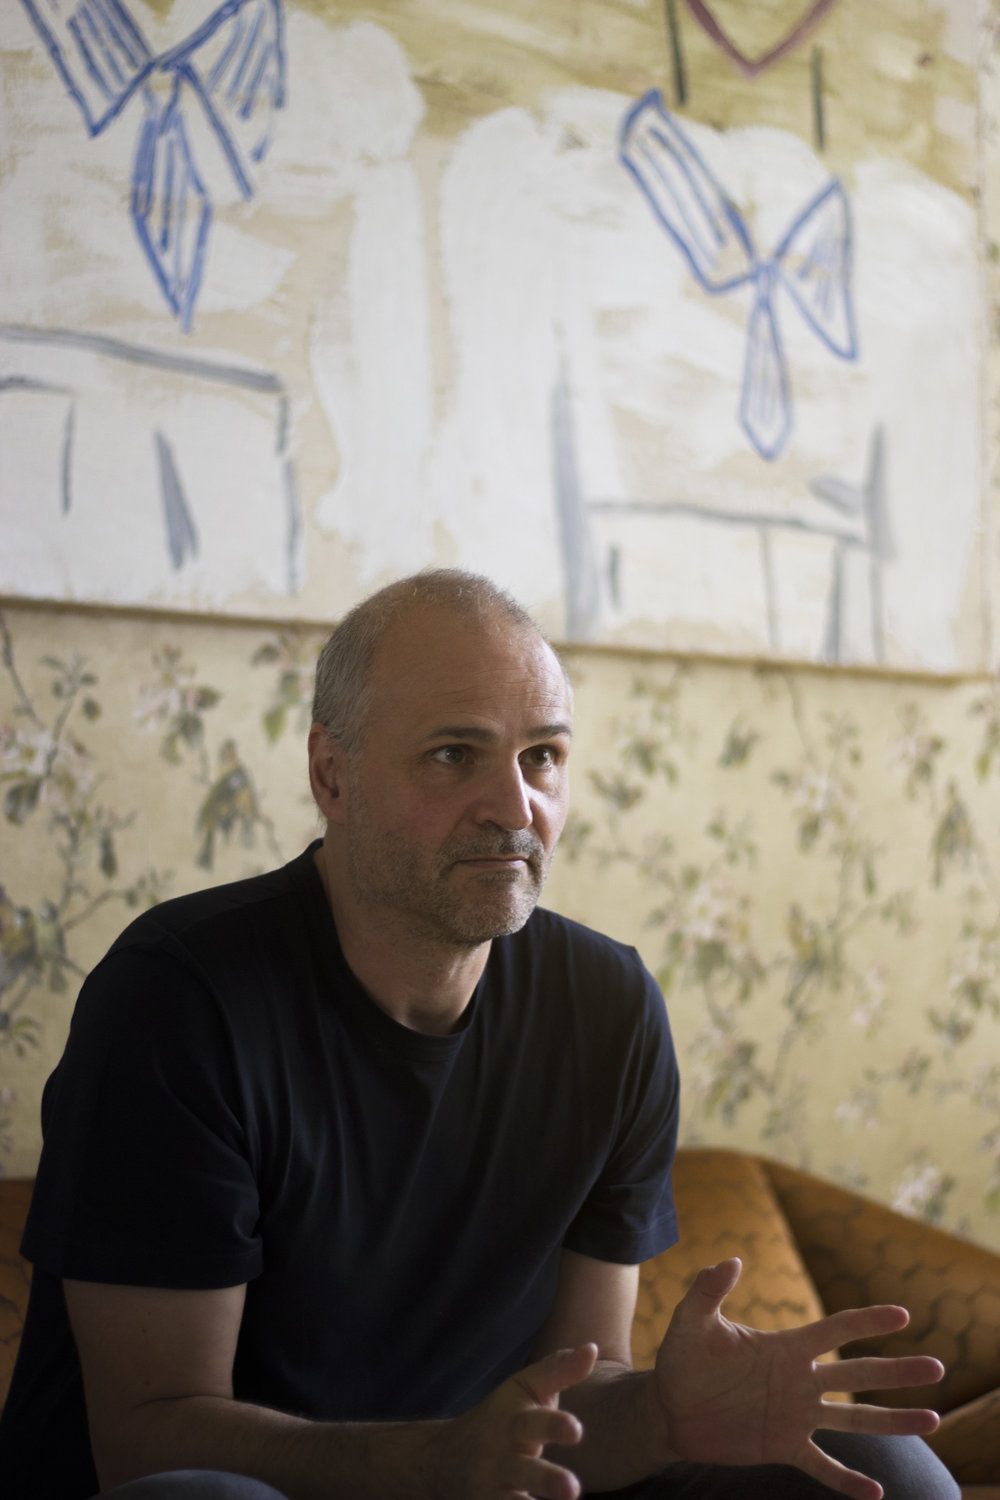 Giovanni Springmeier in his home in Berlin. Work by Rose Wylie.